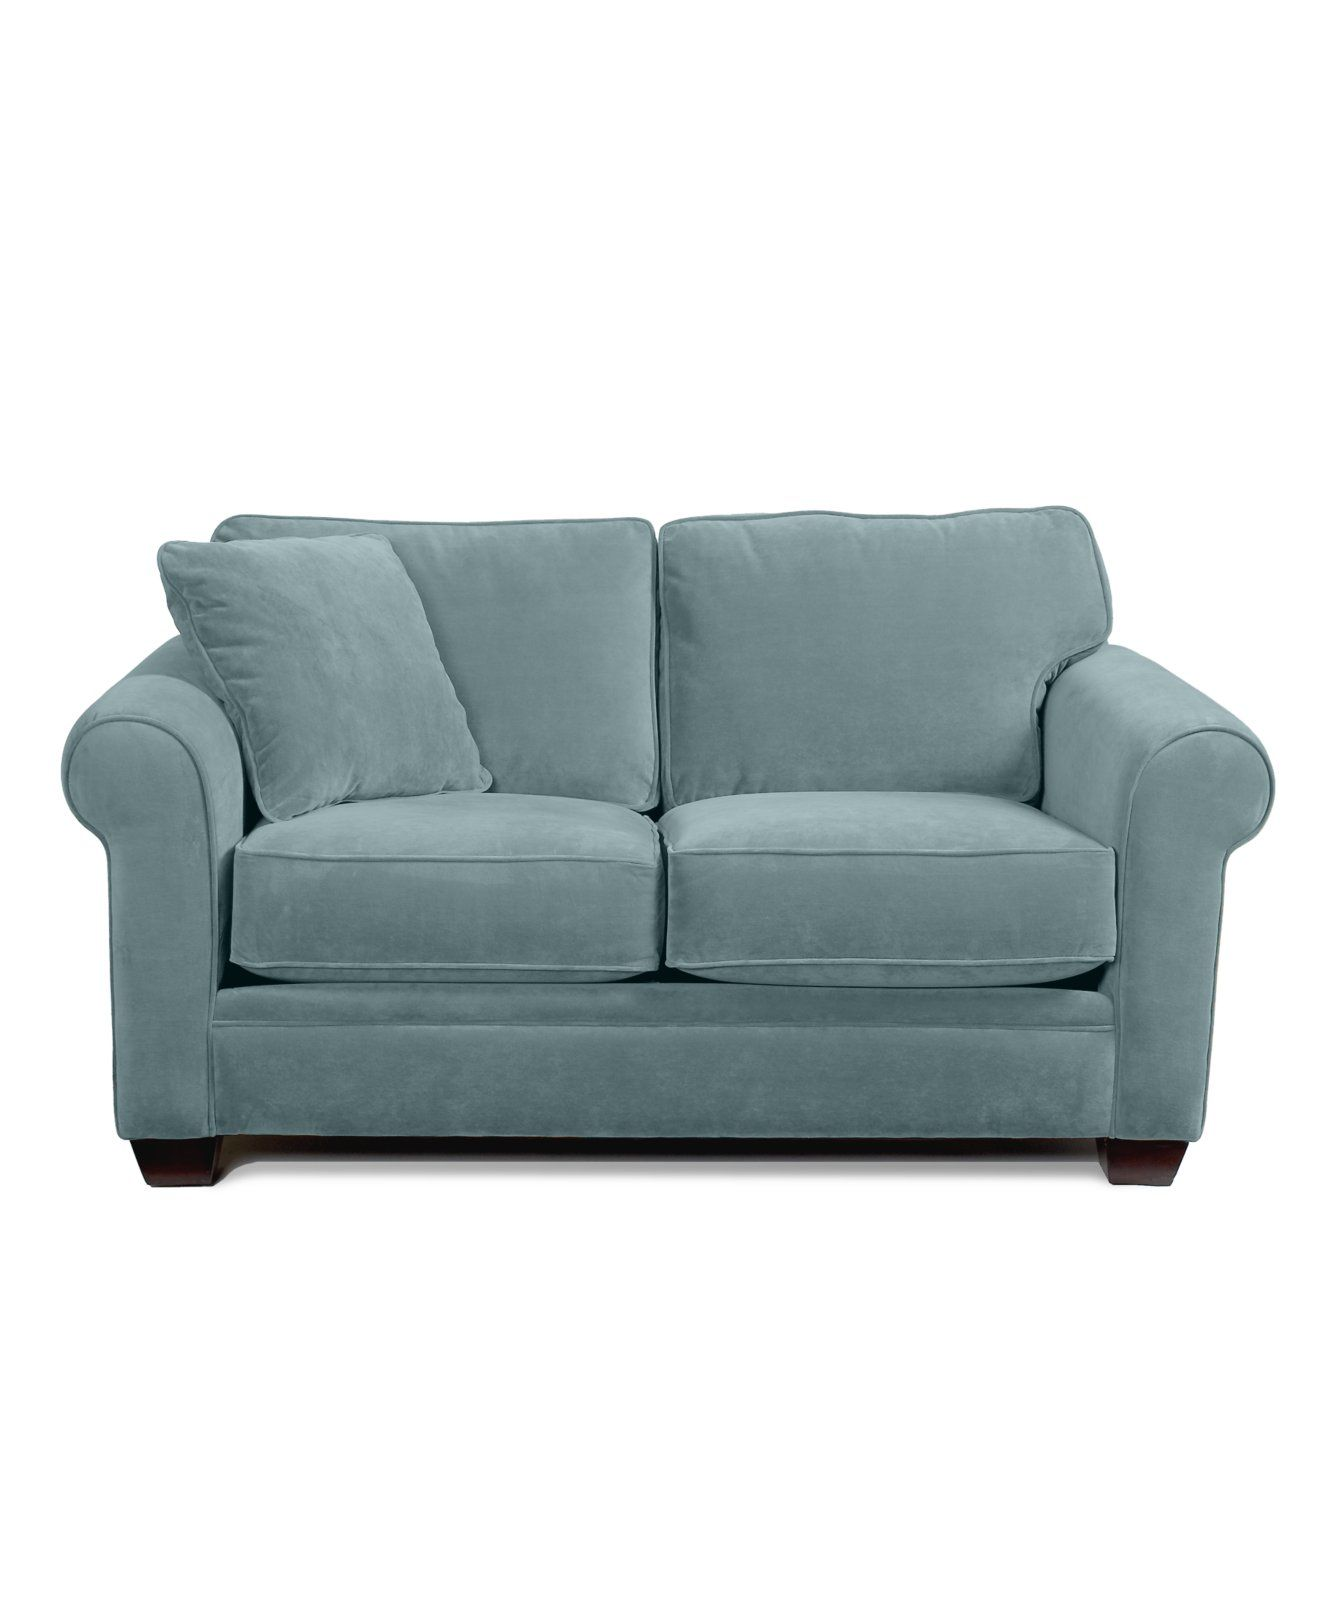 elegant couches white tufted couchest rectangular loveseat silver legs macy couch leather d s new jiiiz round iron